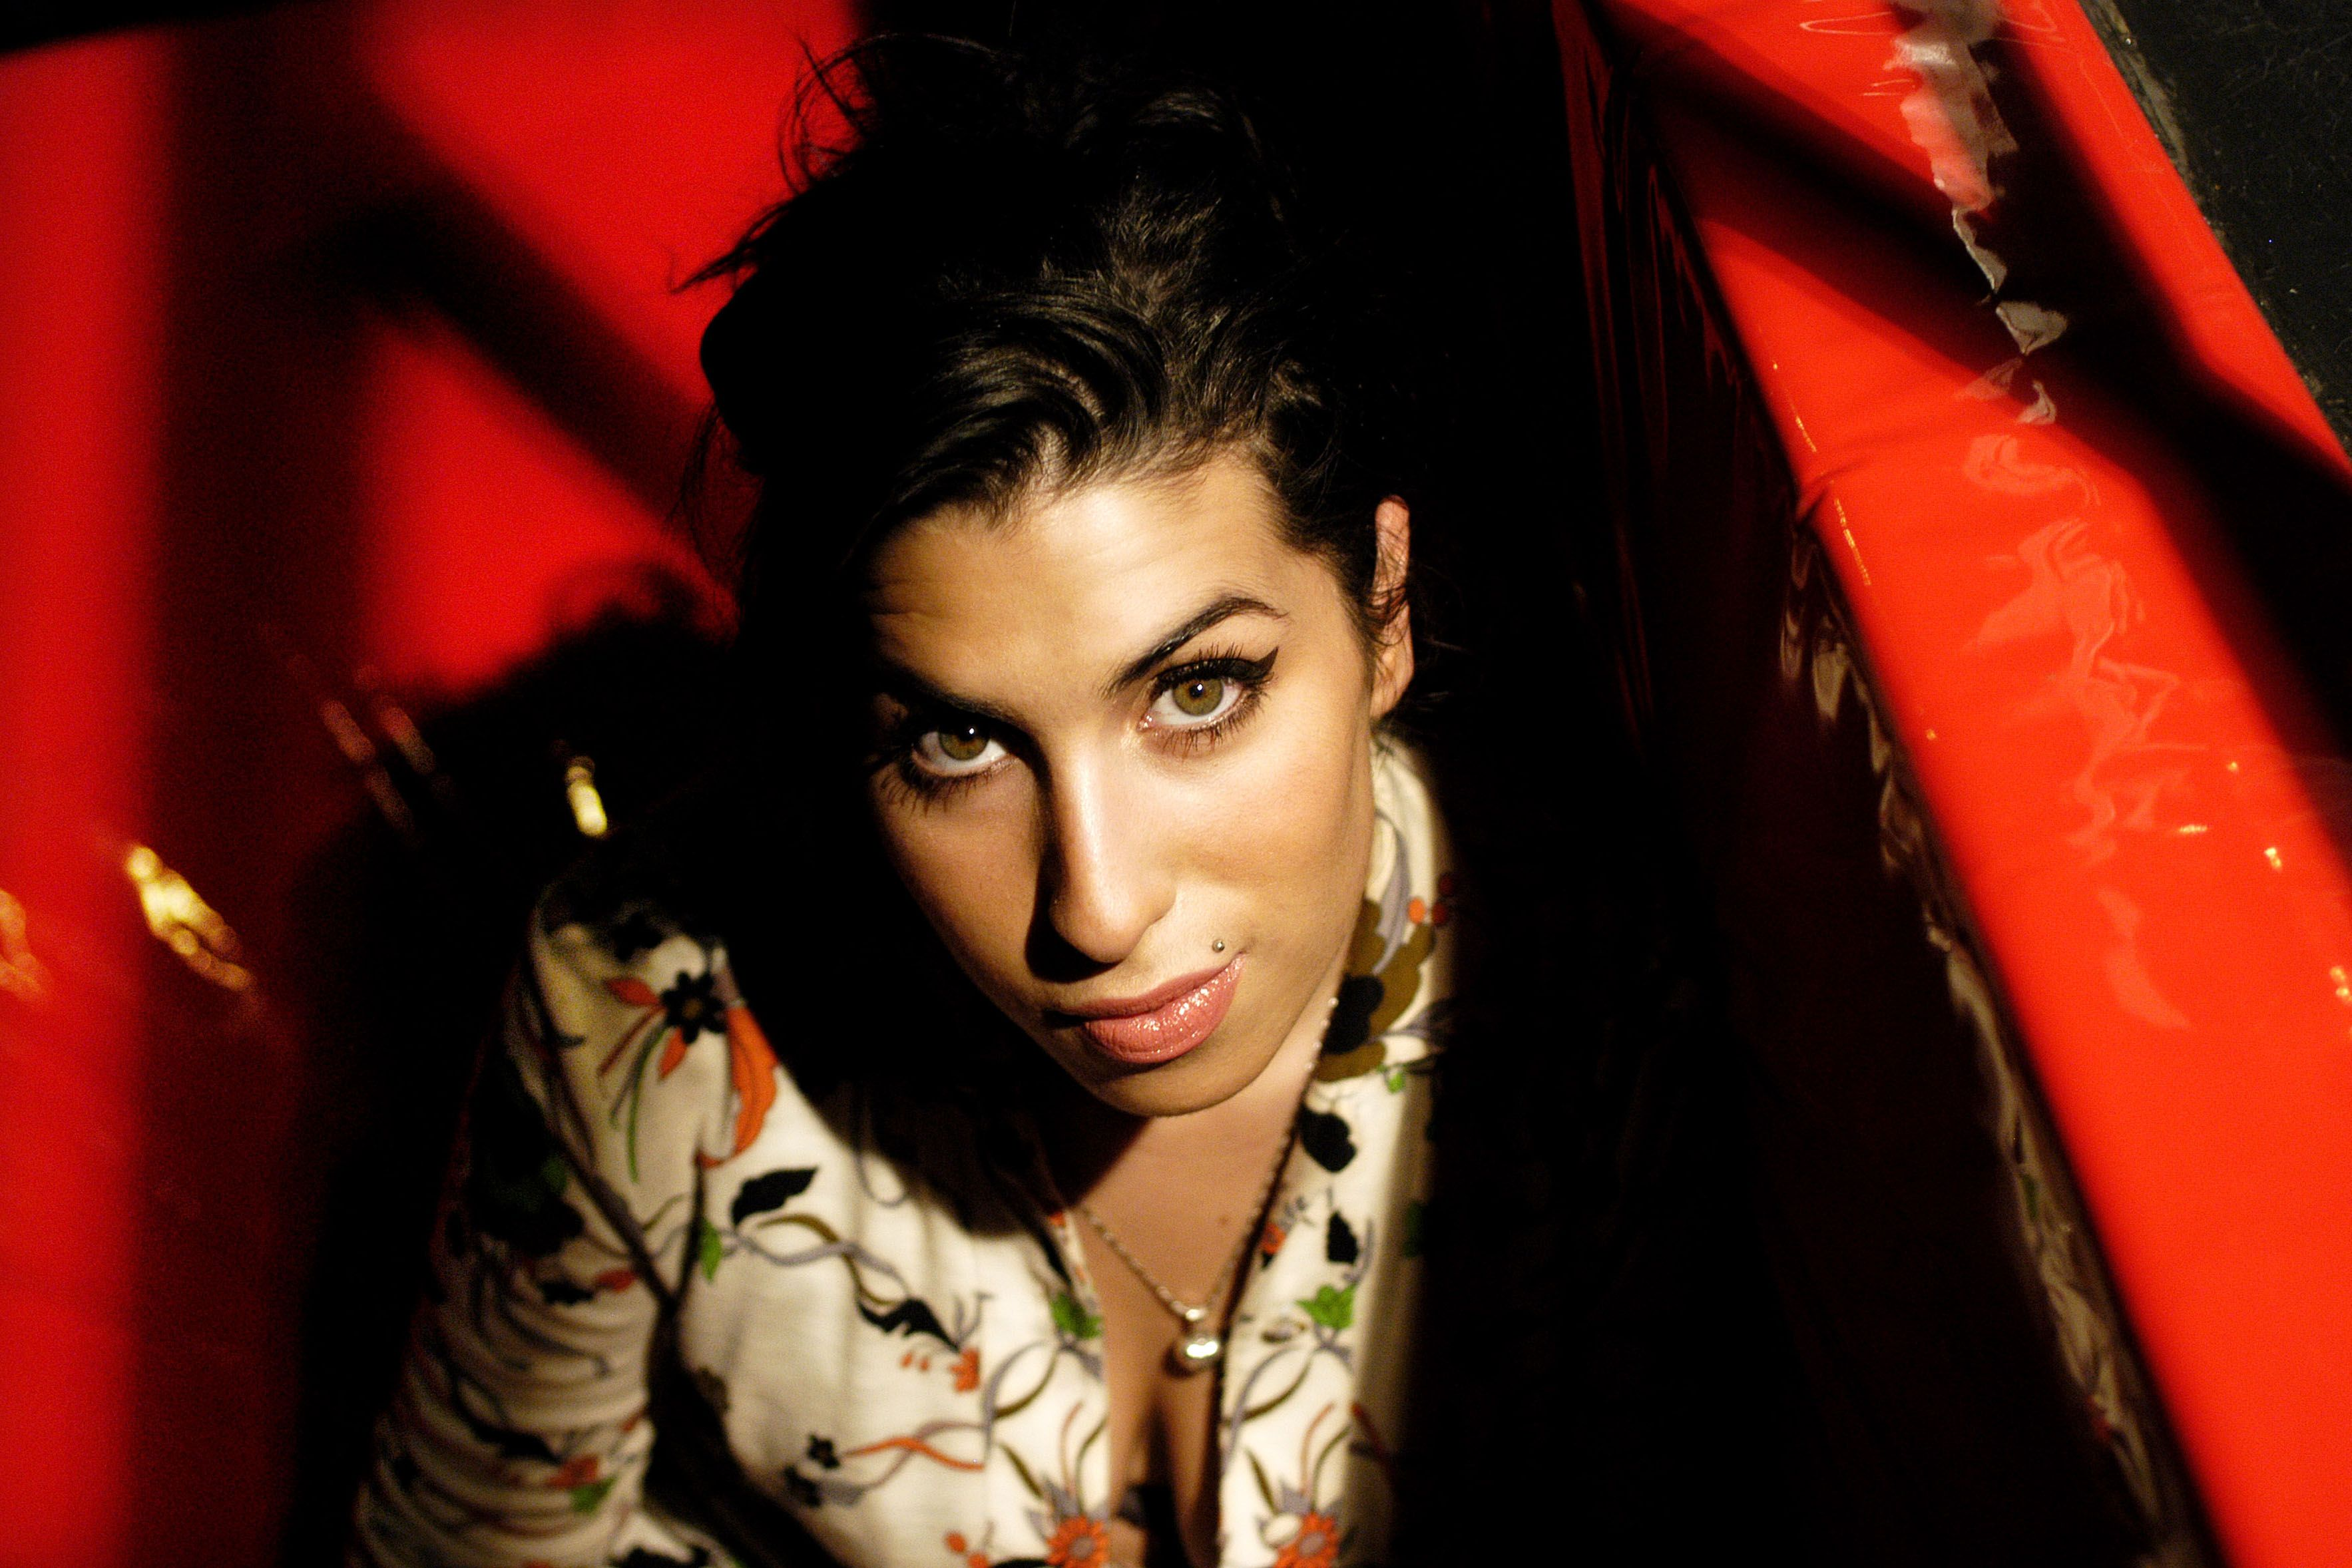 Remembering Amy Winehouse: a tragic reminder of how not to treat famous women